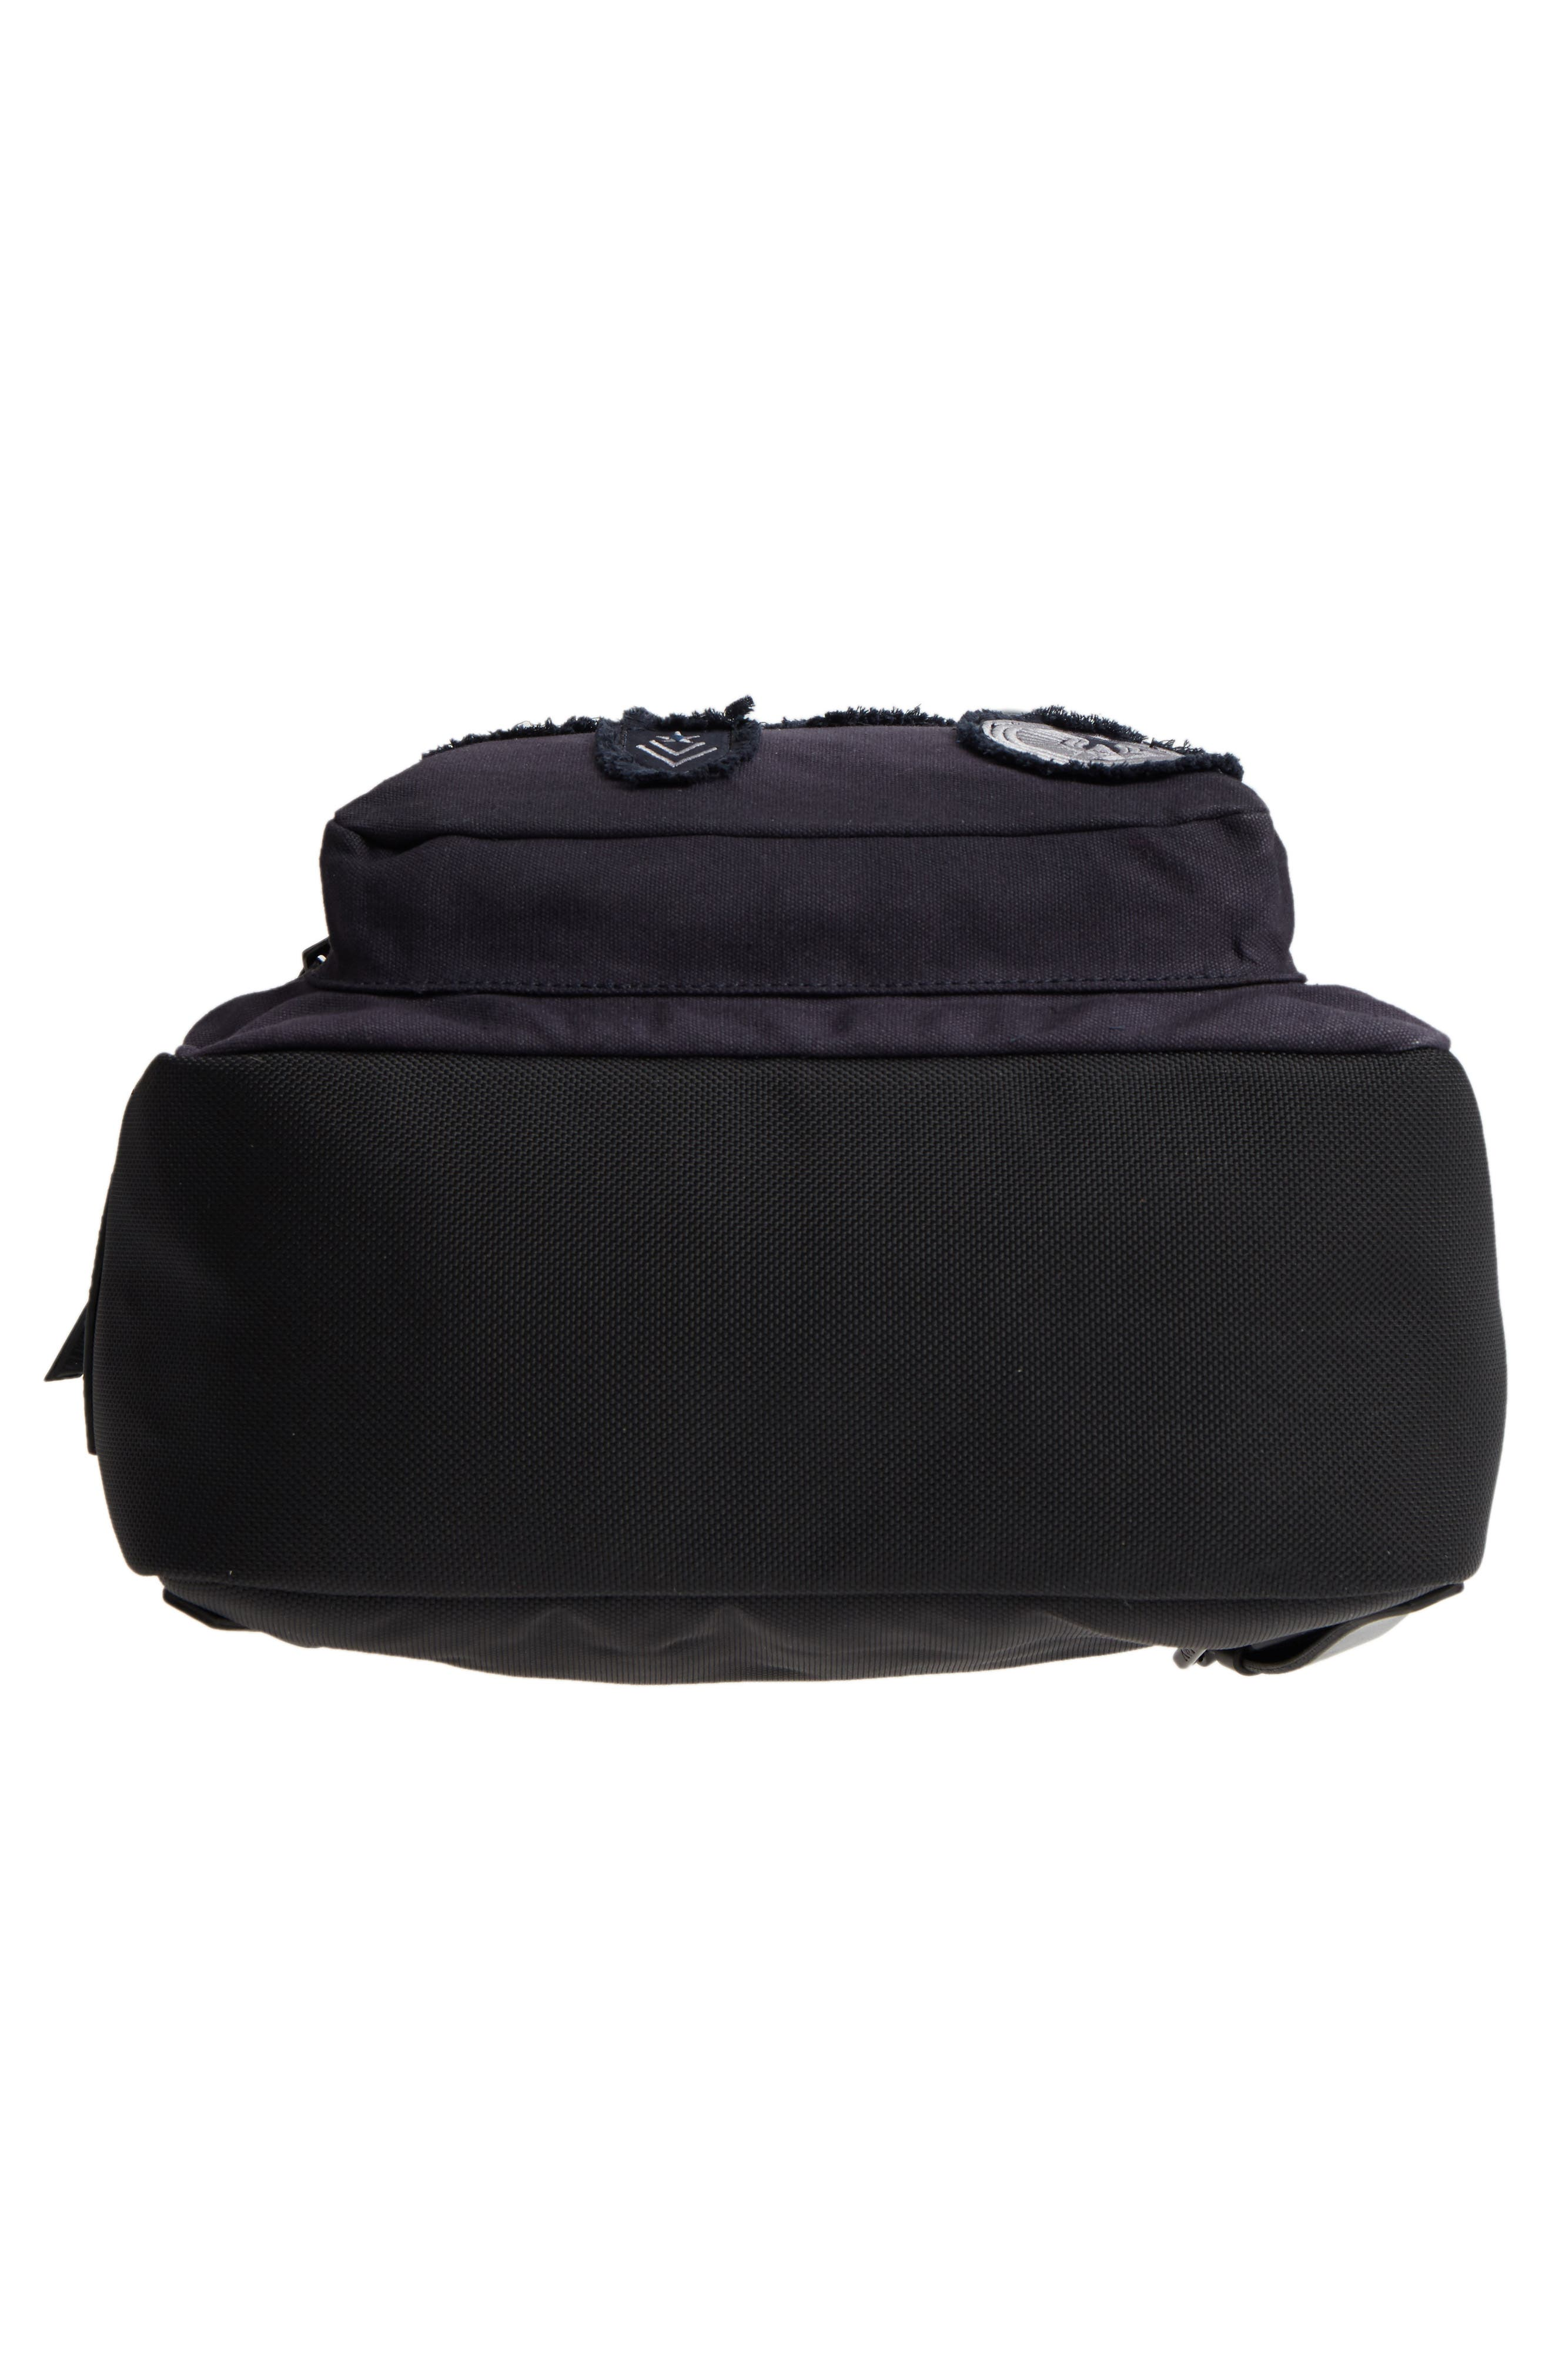 Gibson Patch Backpack,                             Alternate thumbnail 6, color,